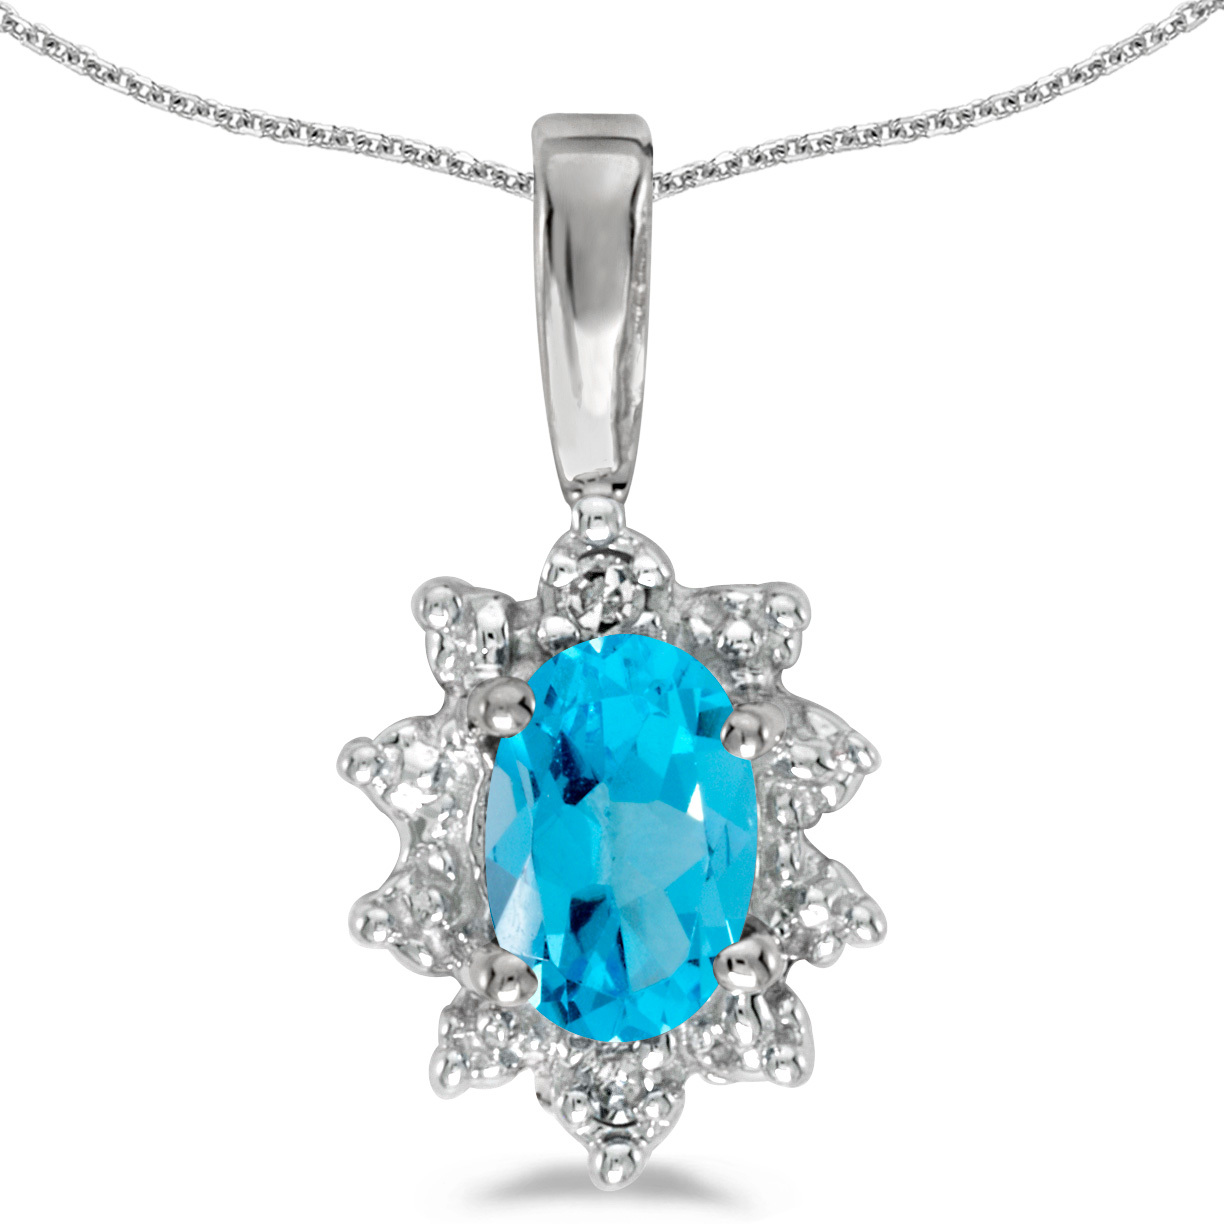 10k White Gold Oval Blue Topaz And Diamond Pendant (Chain NOT included) (CM-P5055W-12)